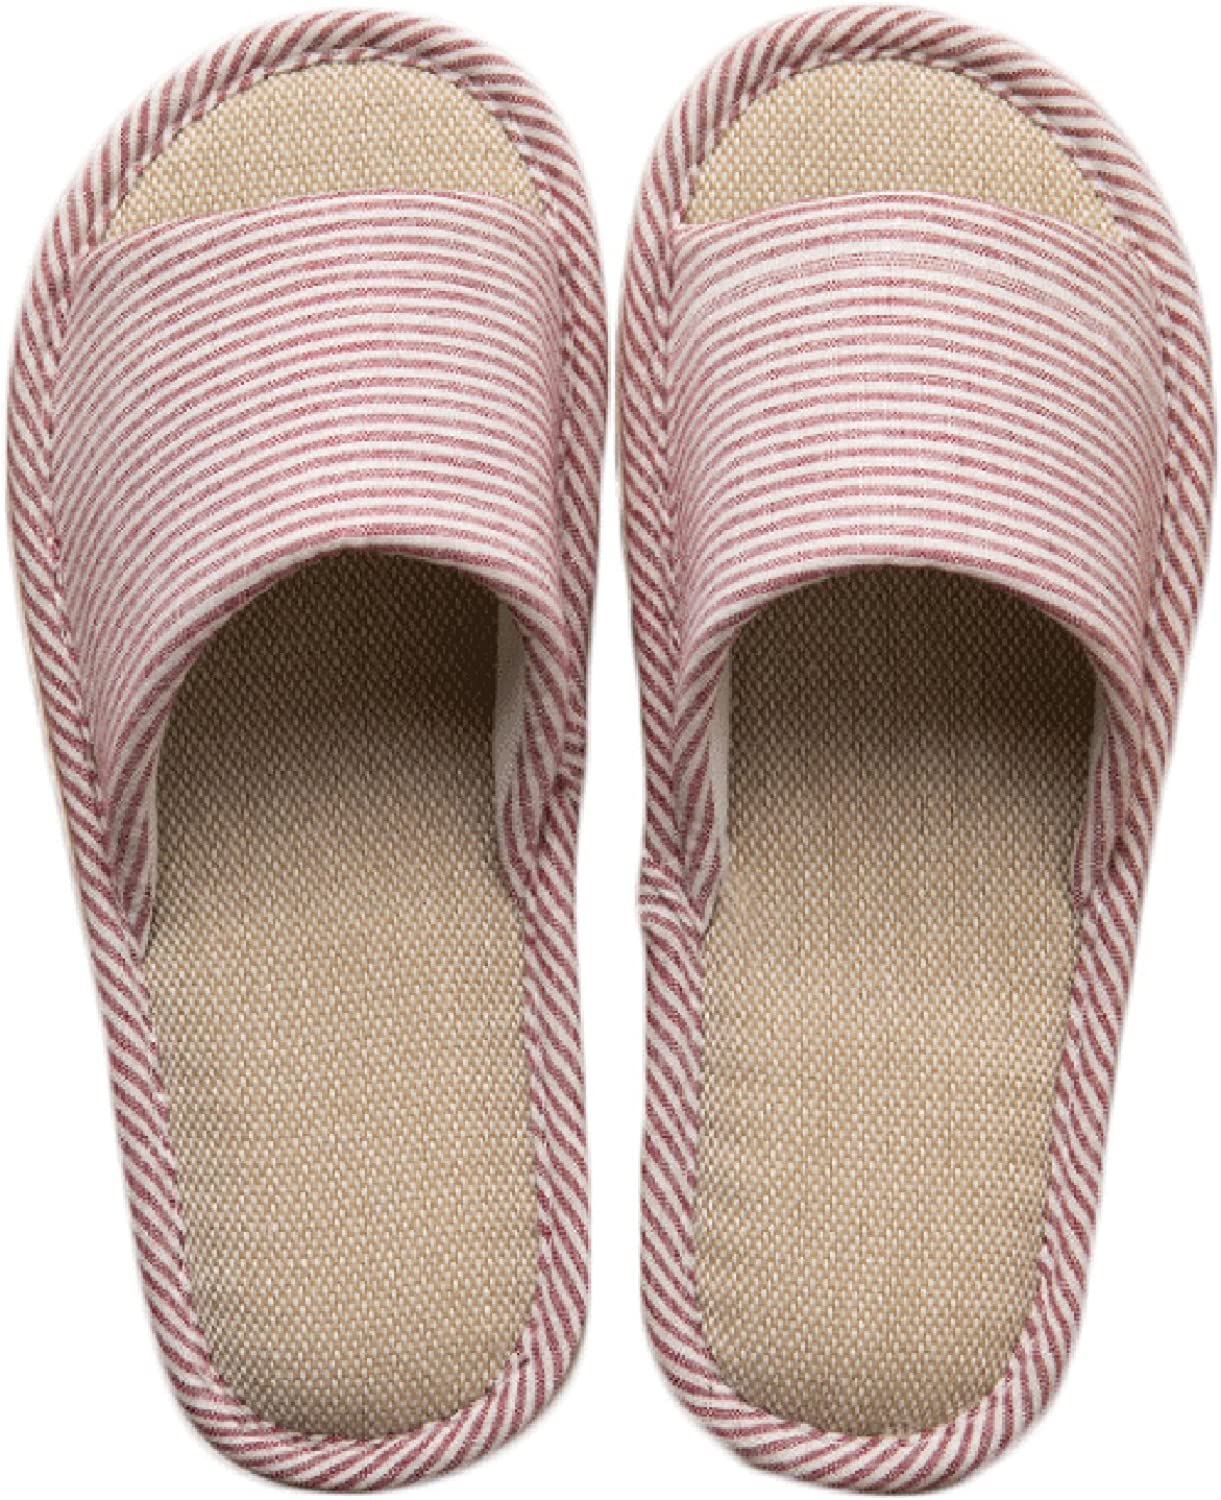 At the price of surprise LYMMC House Slippers Women's and Max 45% OFF Slippe Men's Causal Soft Cotton